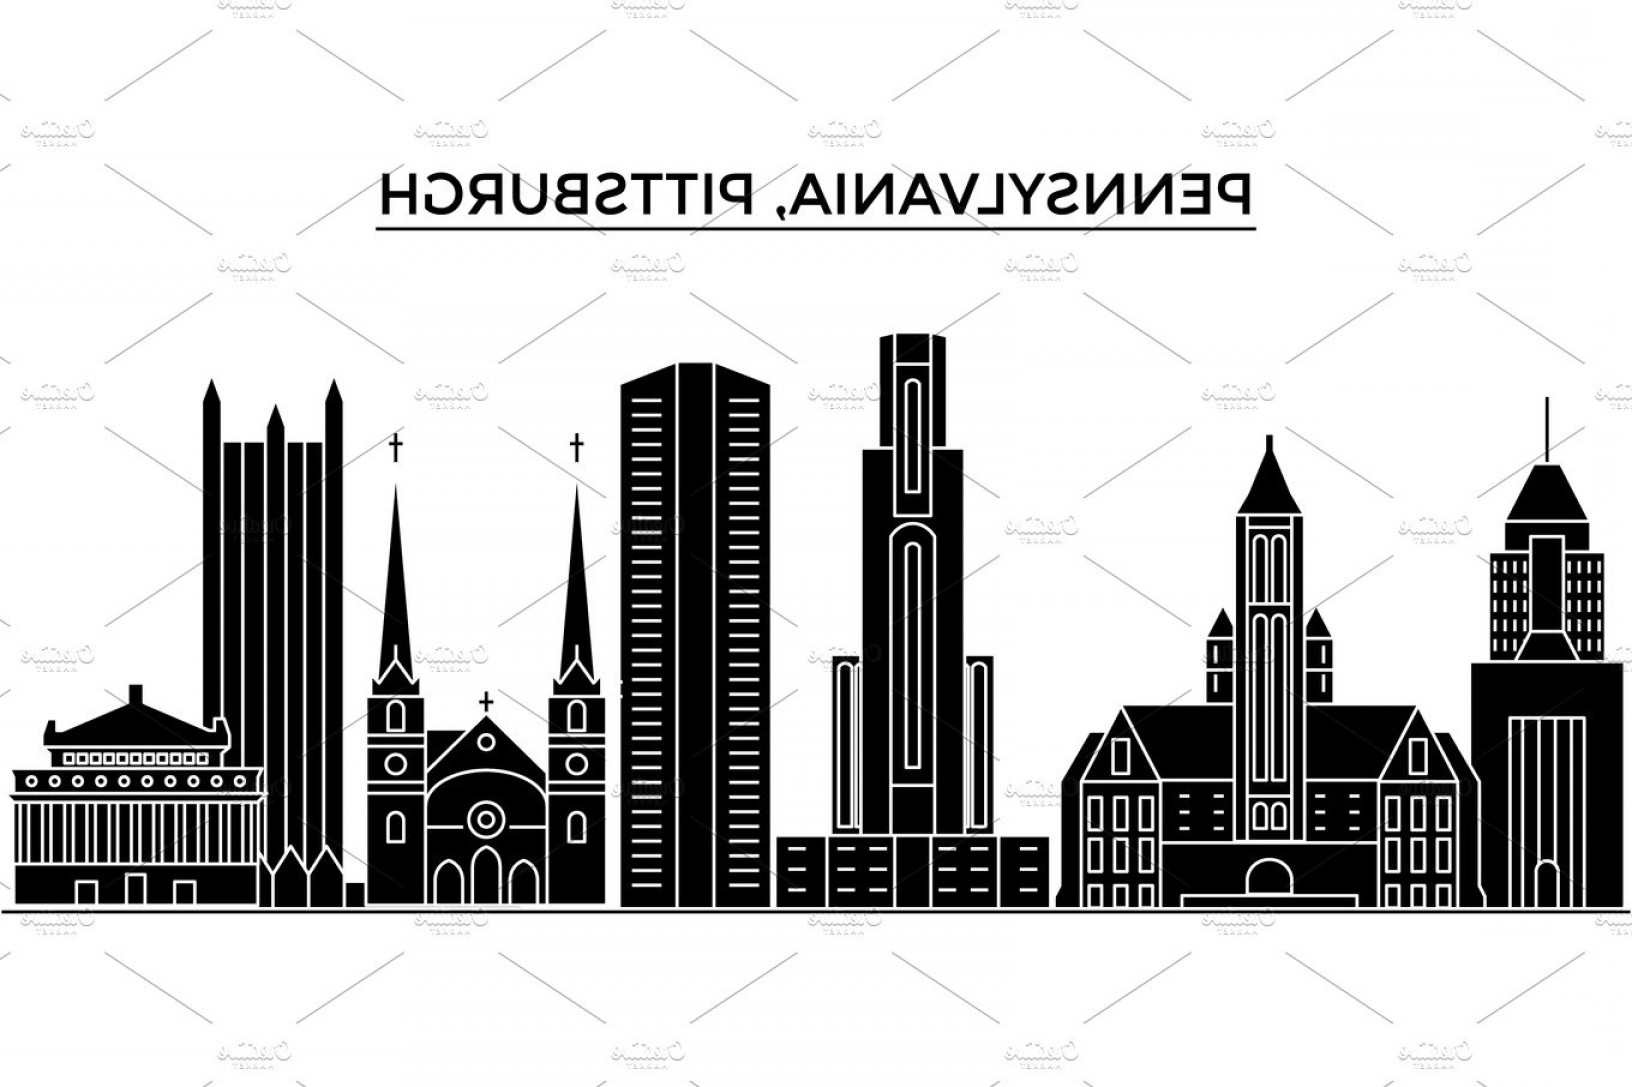 Pittsburgh City Skyline Vector: Usa Pennsylvania Pittsburgh Architecture Vector City Skyline Travel Cityscape With Landmarks Buildings Isolated Sights On Backgr